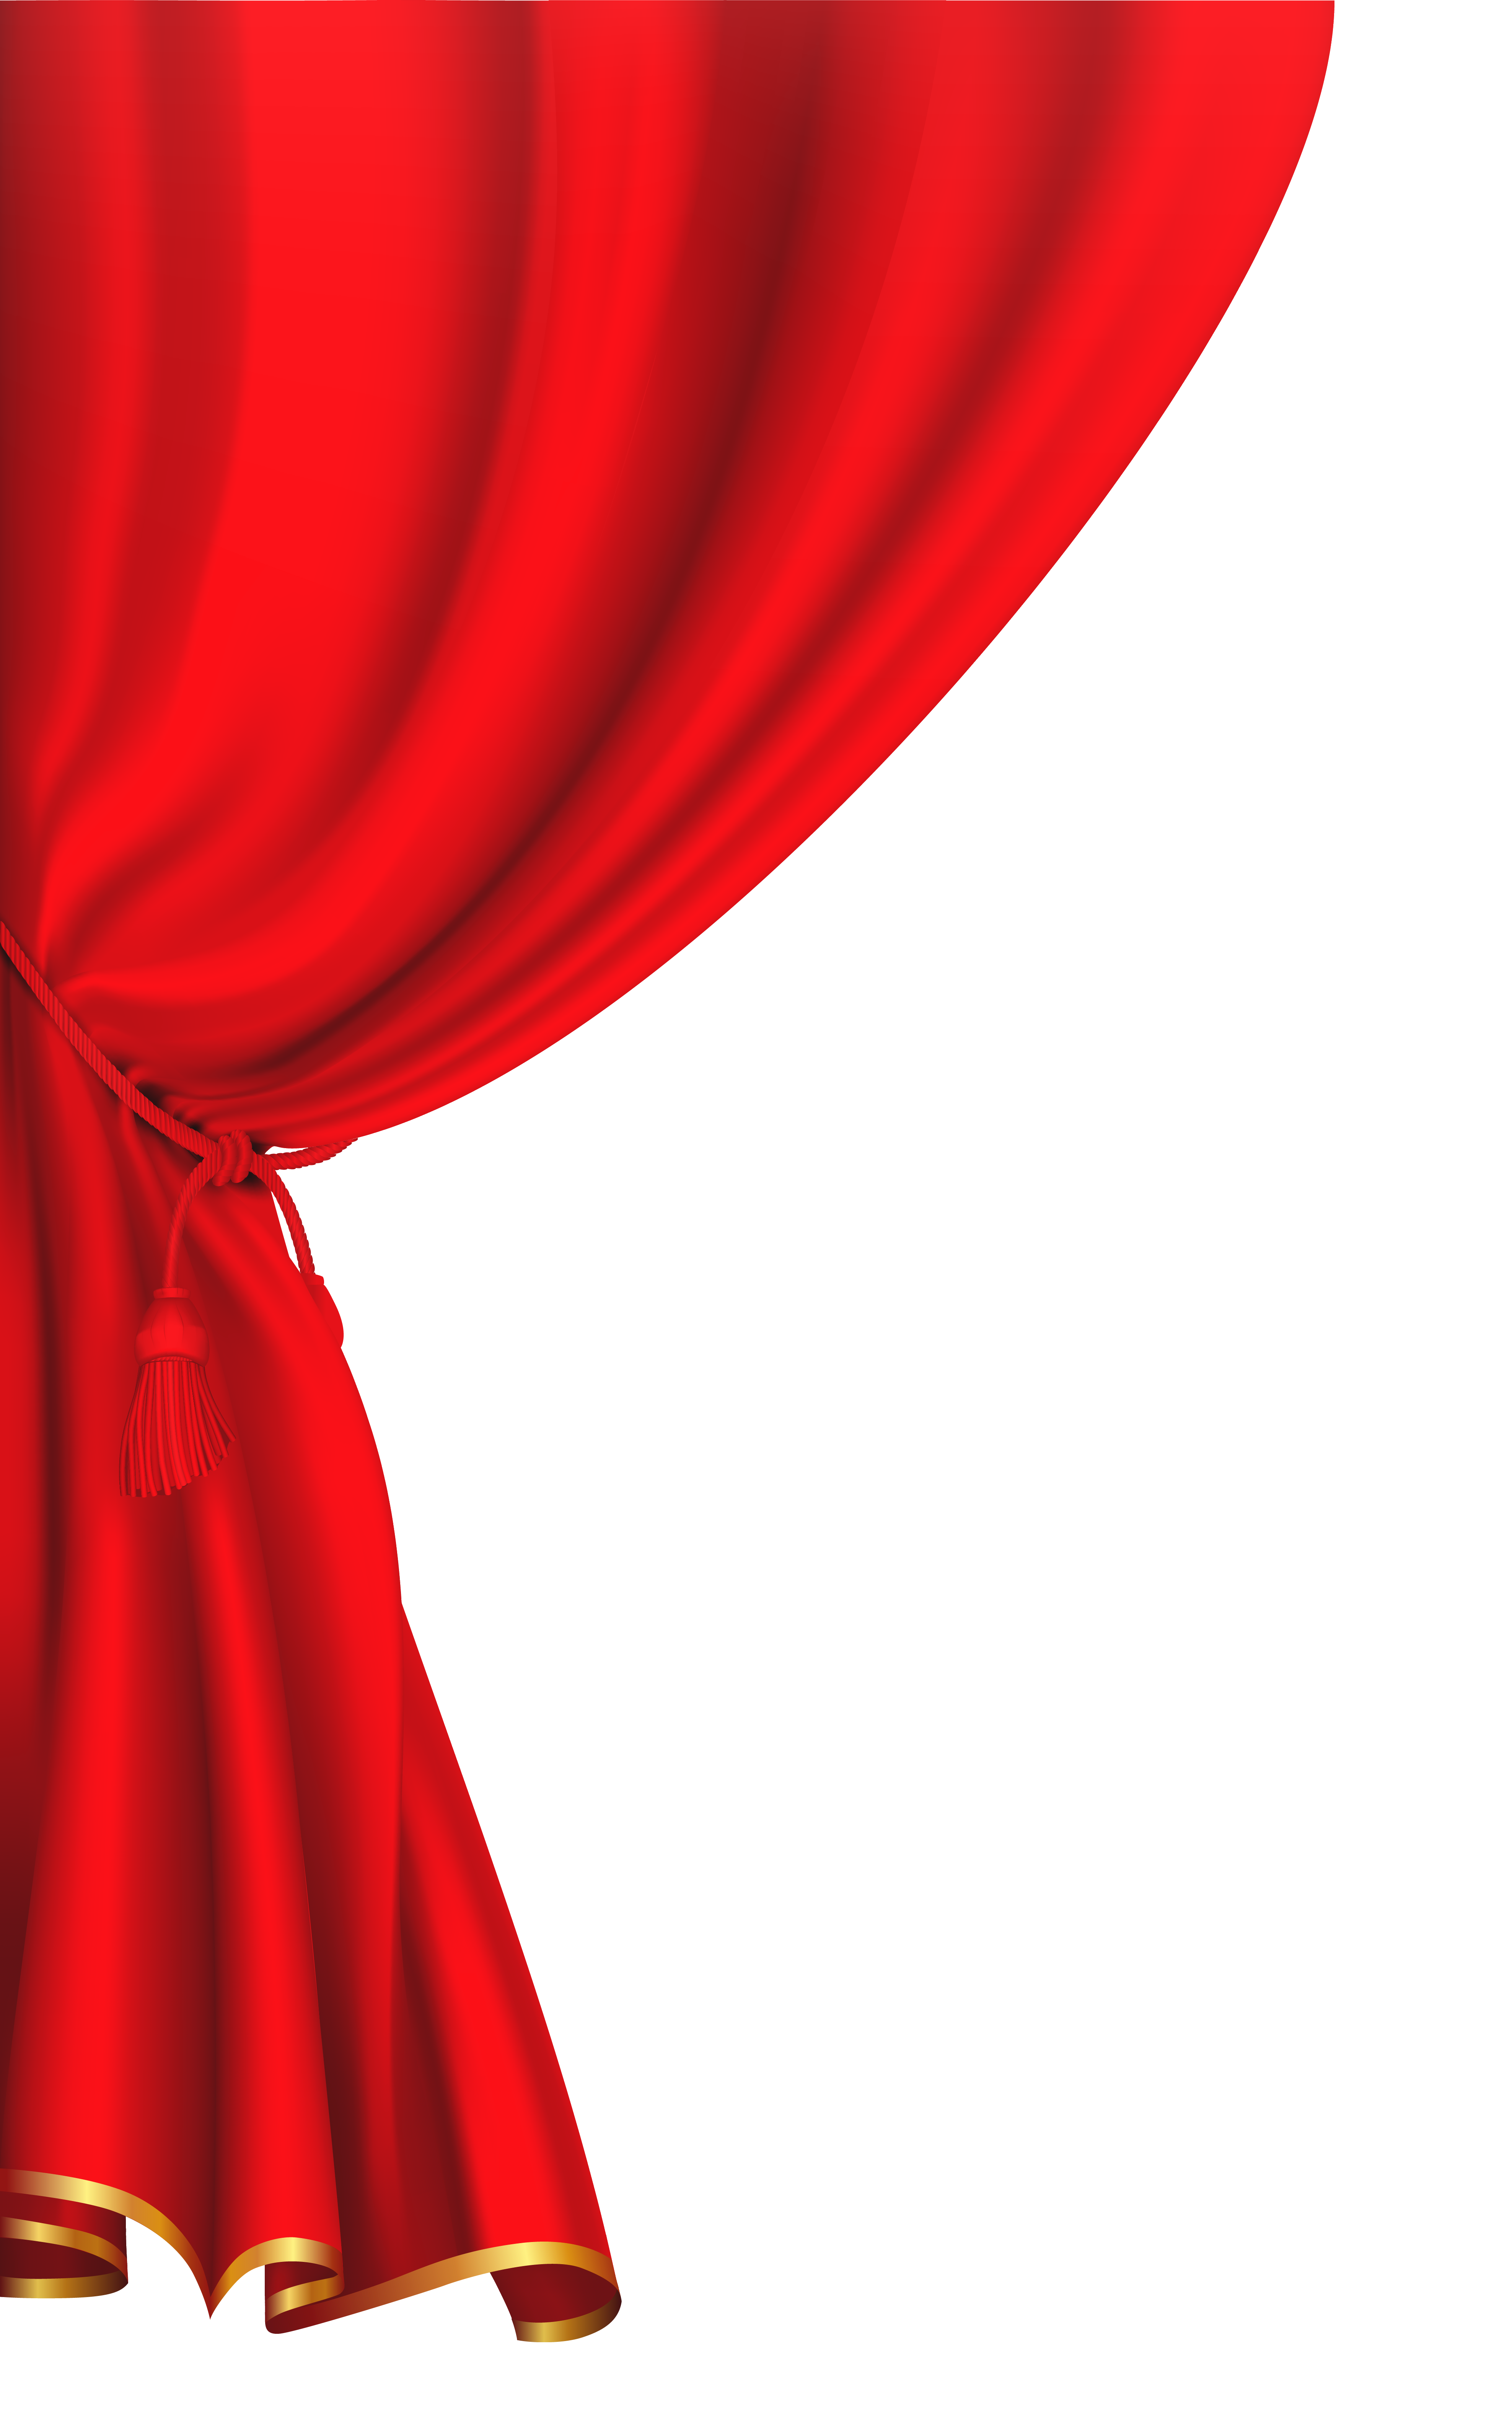 Cutains clipart image library download Pin by Naptech Computer on Webs | Curtains, Red curtains, Long ... image library download